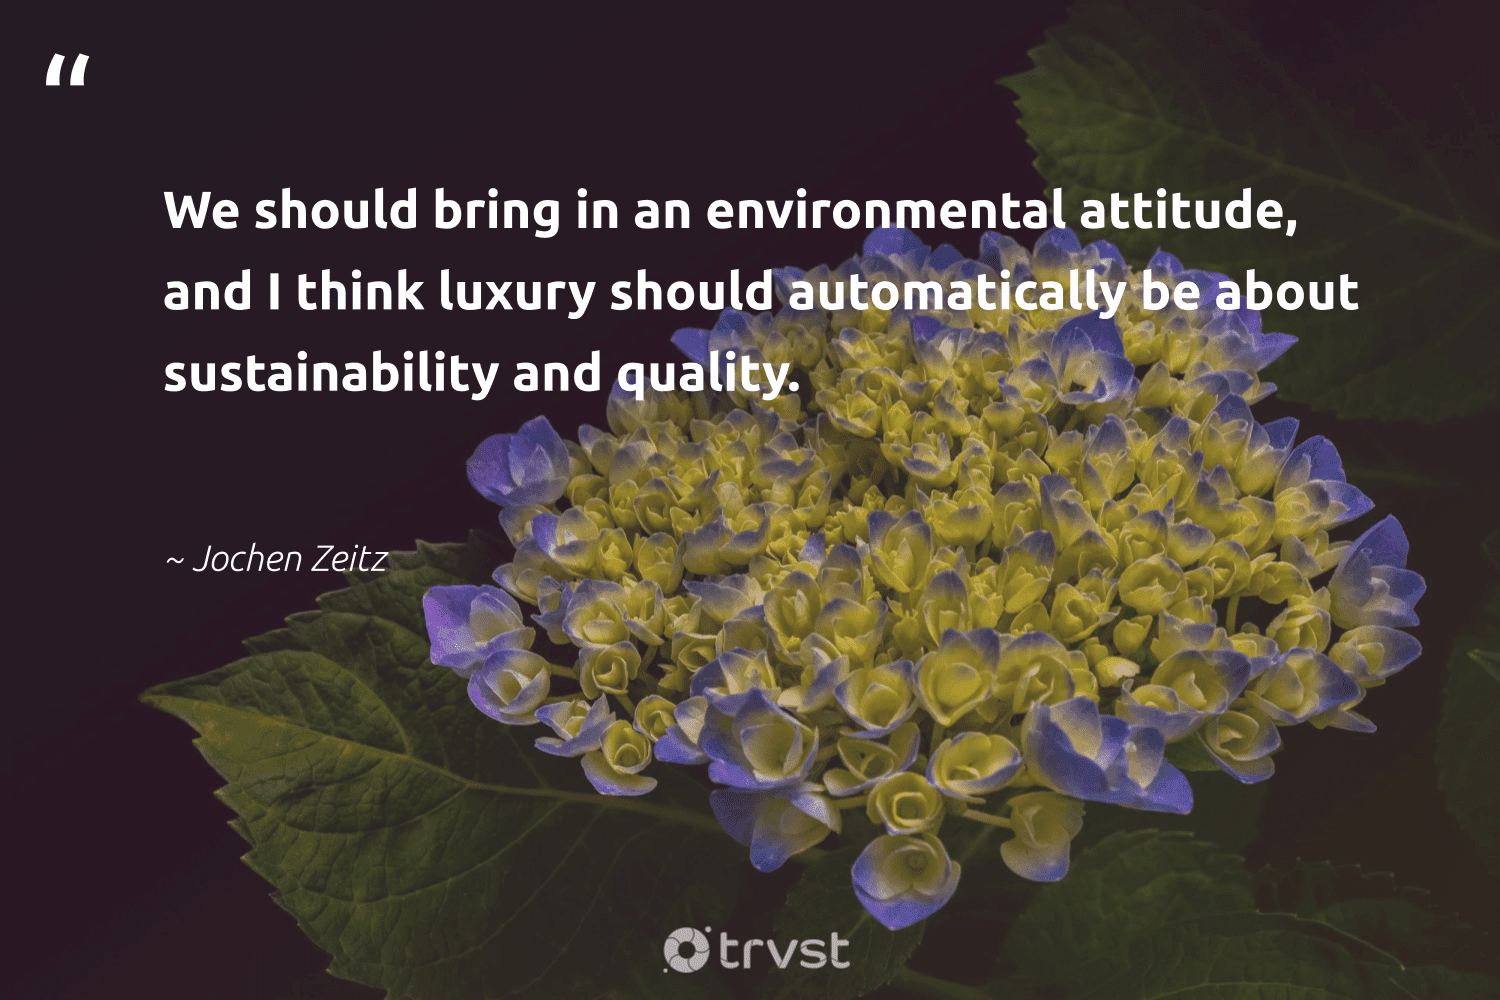 """""""We should bring in an environmental attitude, and I think luxury should automatically be about sustainability and quality.""""  - Jochen Zeitz #trvst #quotes #sustainability #environmental #sustainable #fashion #bethechange #ecoconscious #sustainableliving #greenliving #green #dogood"""